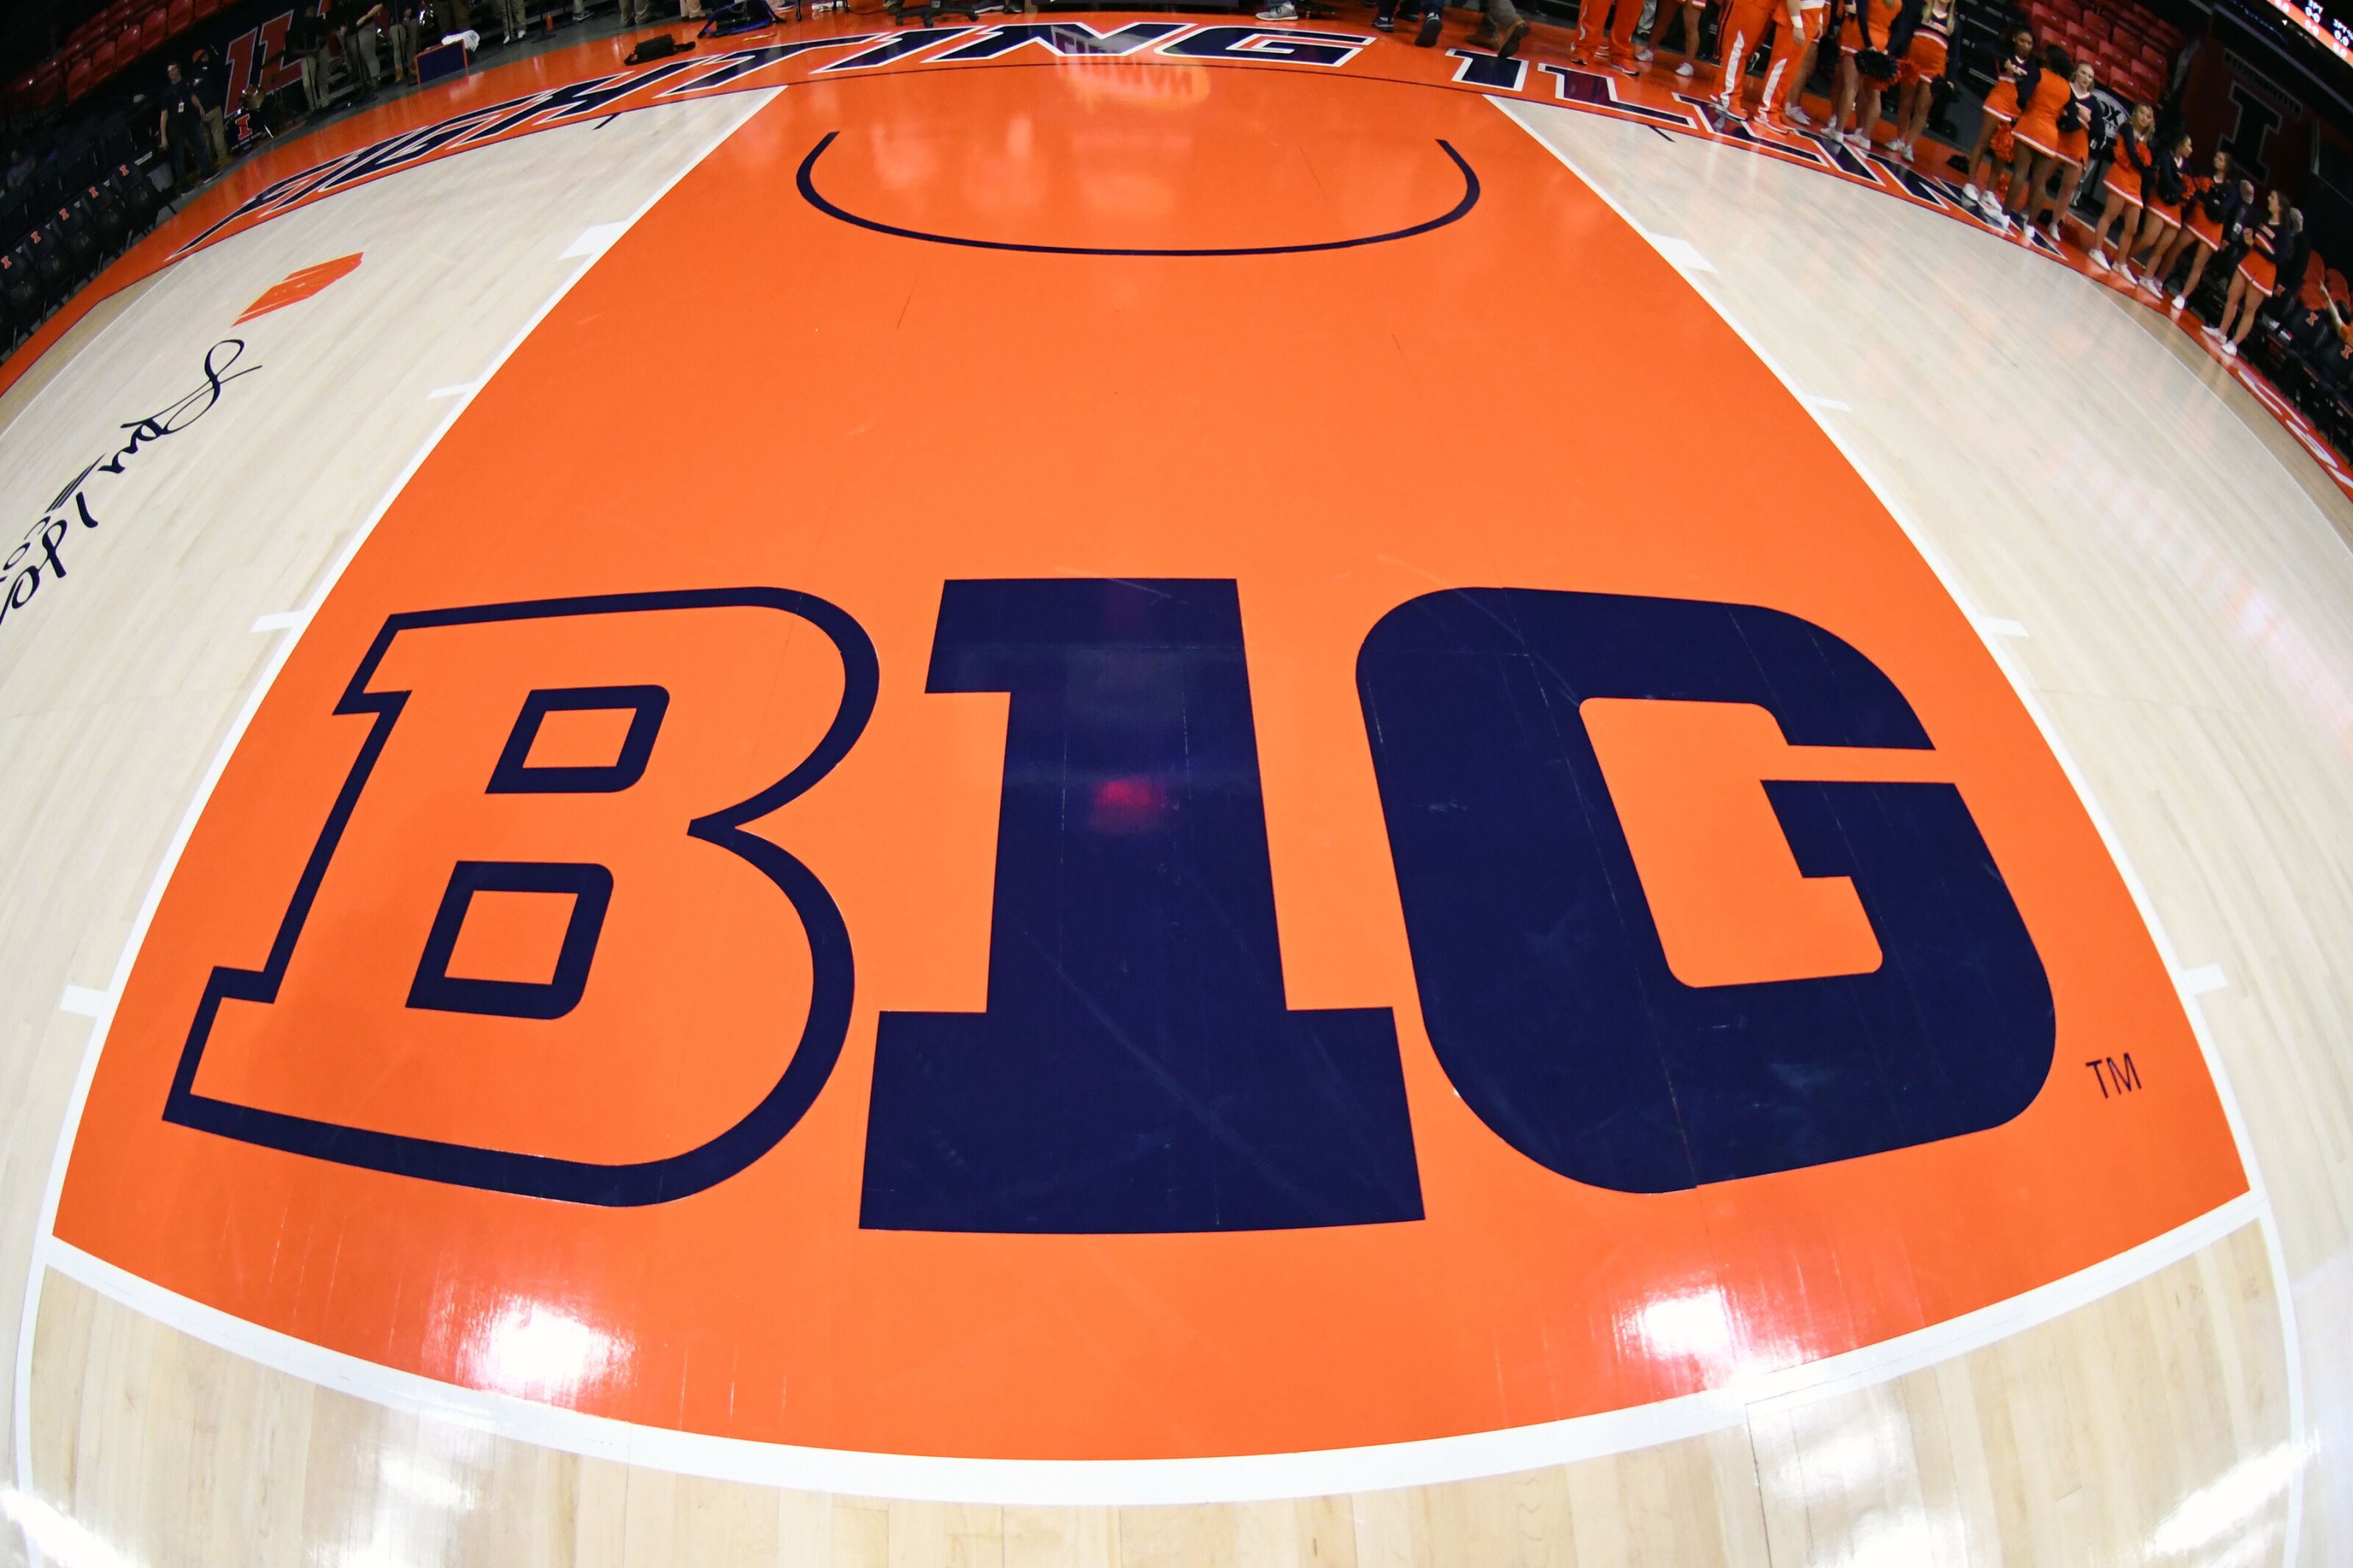 CHAMPAIGN, IL - INTRODUCTION 13: The Big 10 logo on the floor before a college basketball match between Georgetown Hoyas and Illinois Fighting Illini at the State Farm Center on November 13, 2018 in Champaign, Illinois. (Photo by Mitchell Layton / Getty Images) *** Local Appointment ***